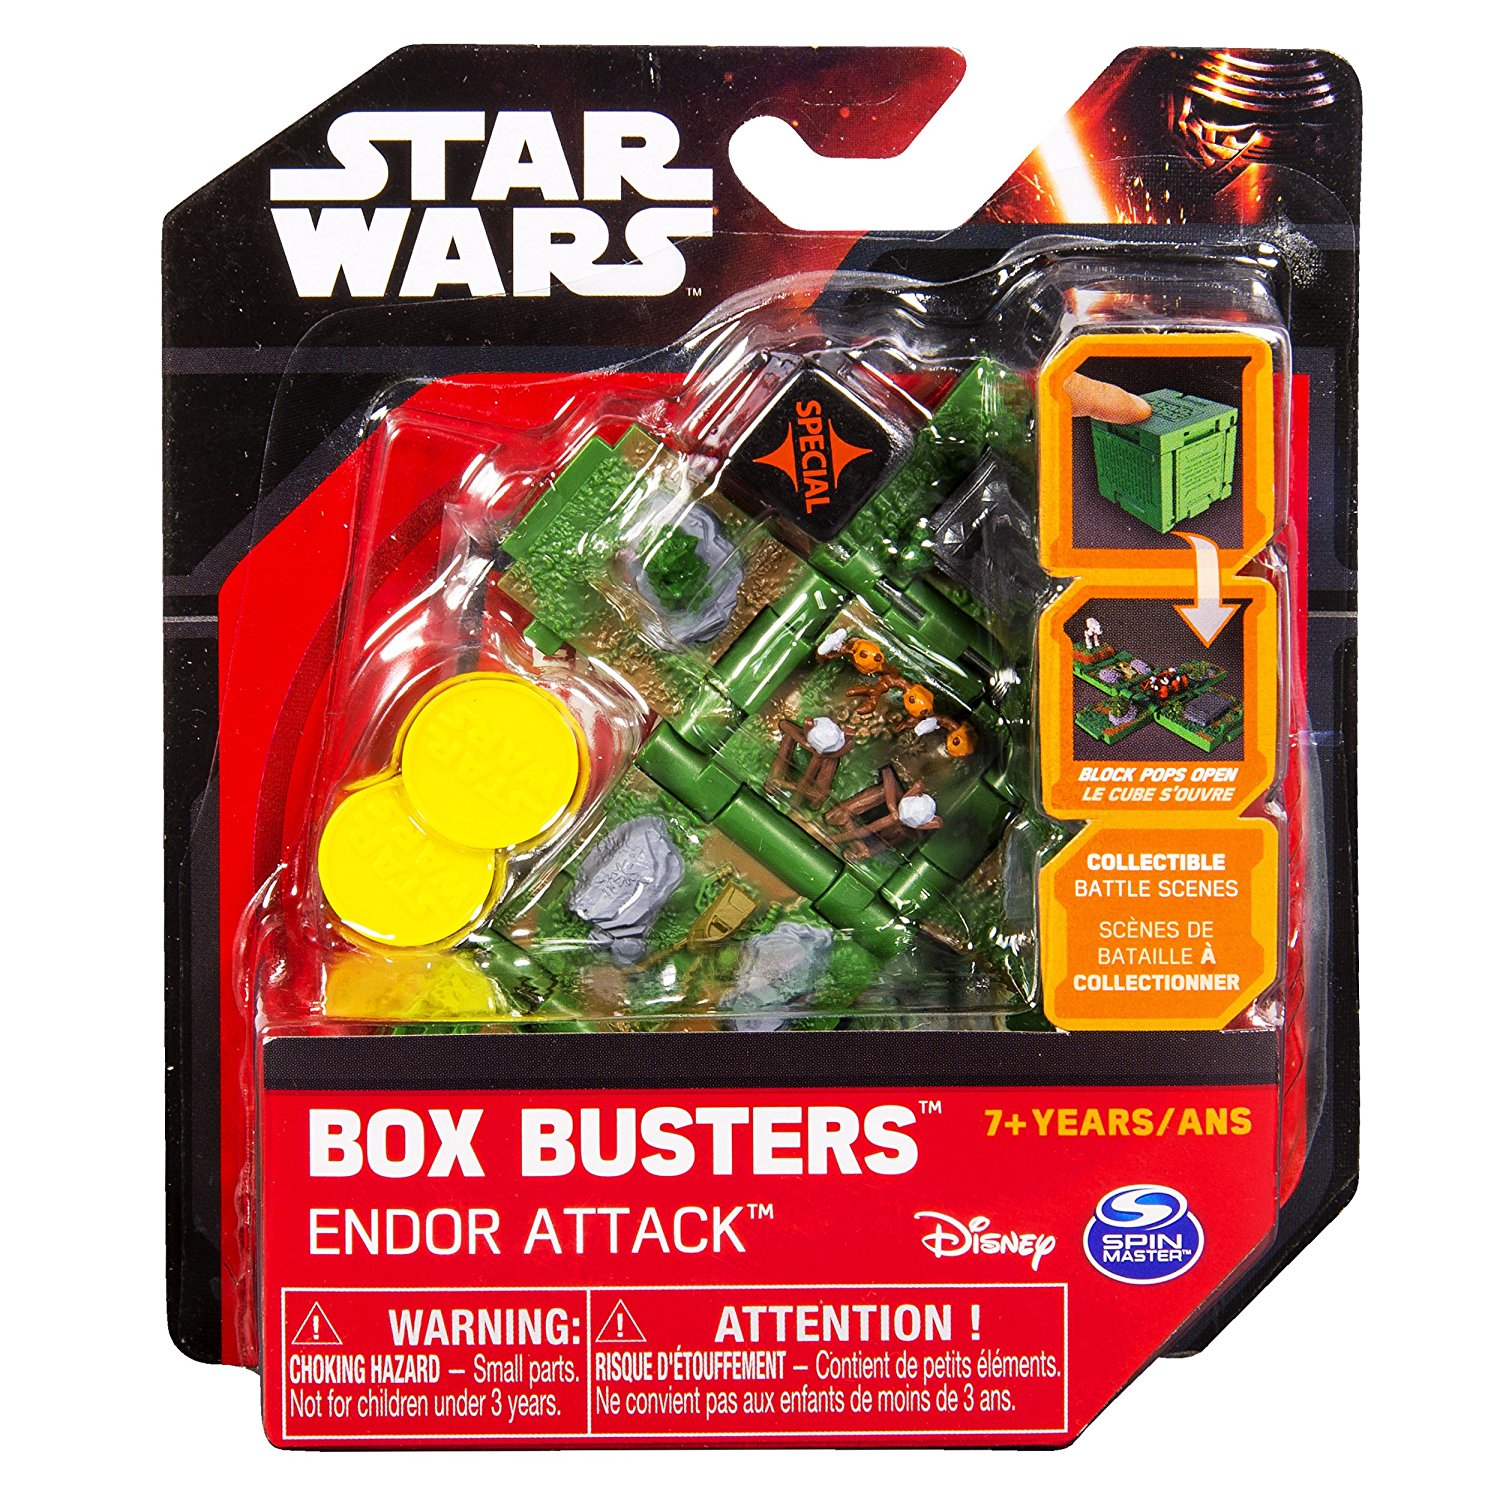 Star Wars Box Busters, Endore Attack